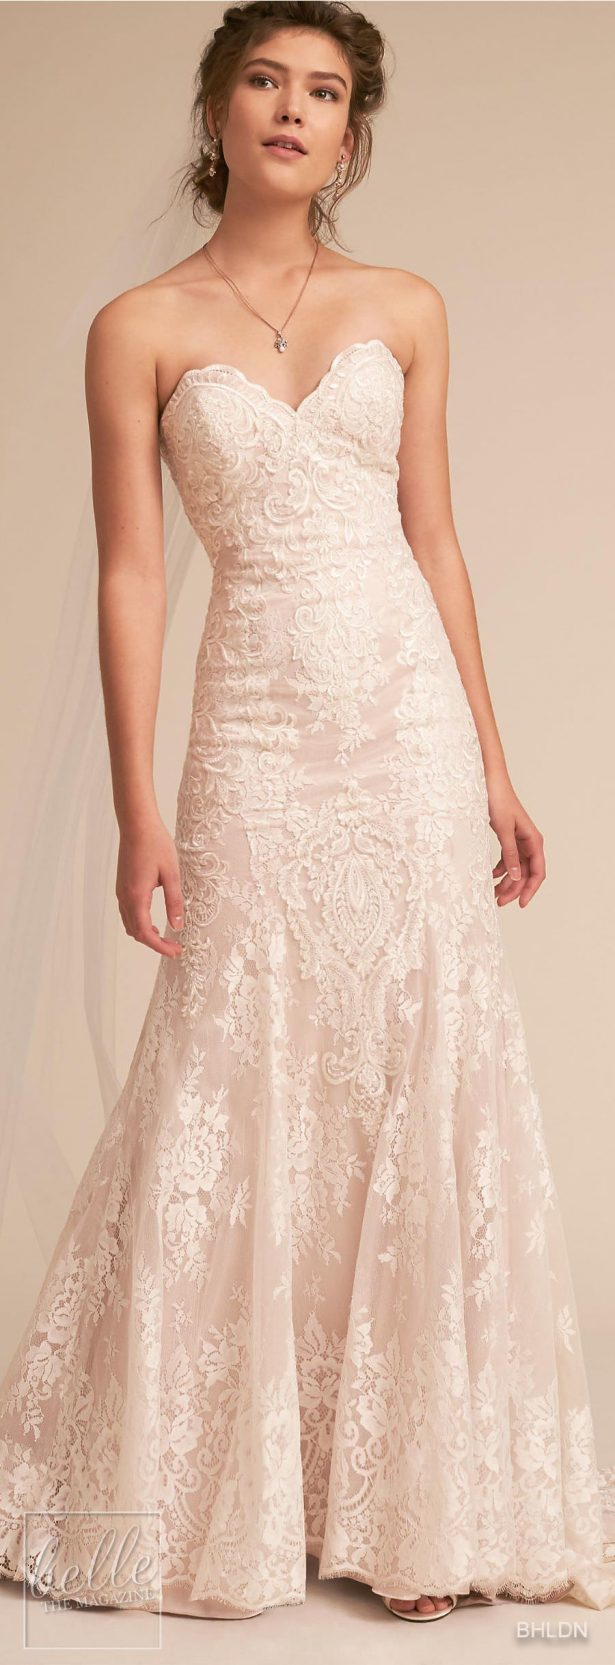 c401bc71ee957e Our Favorite Wedding Dresses from BHLDN - Belle The Magazine